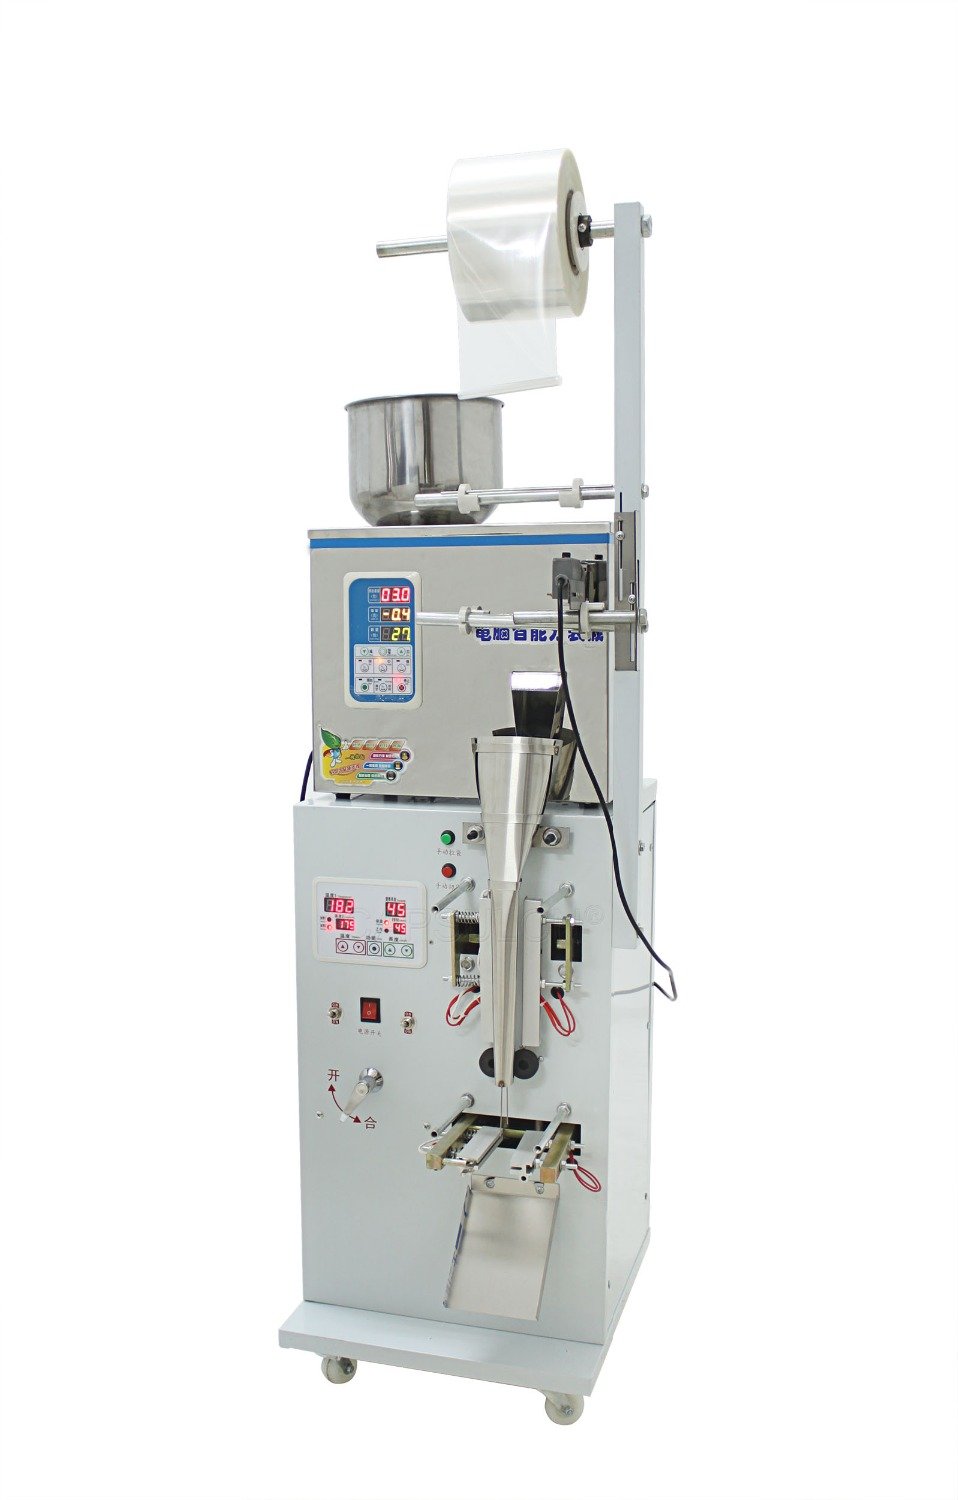 CapsulCN, 2-100g Full Automatic Foil Pouch Weight And Filling Packaging Machine,Herb/Powder/Food Packing Machine(Hong Kong)